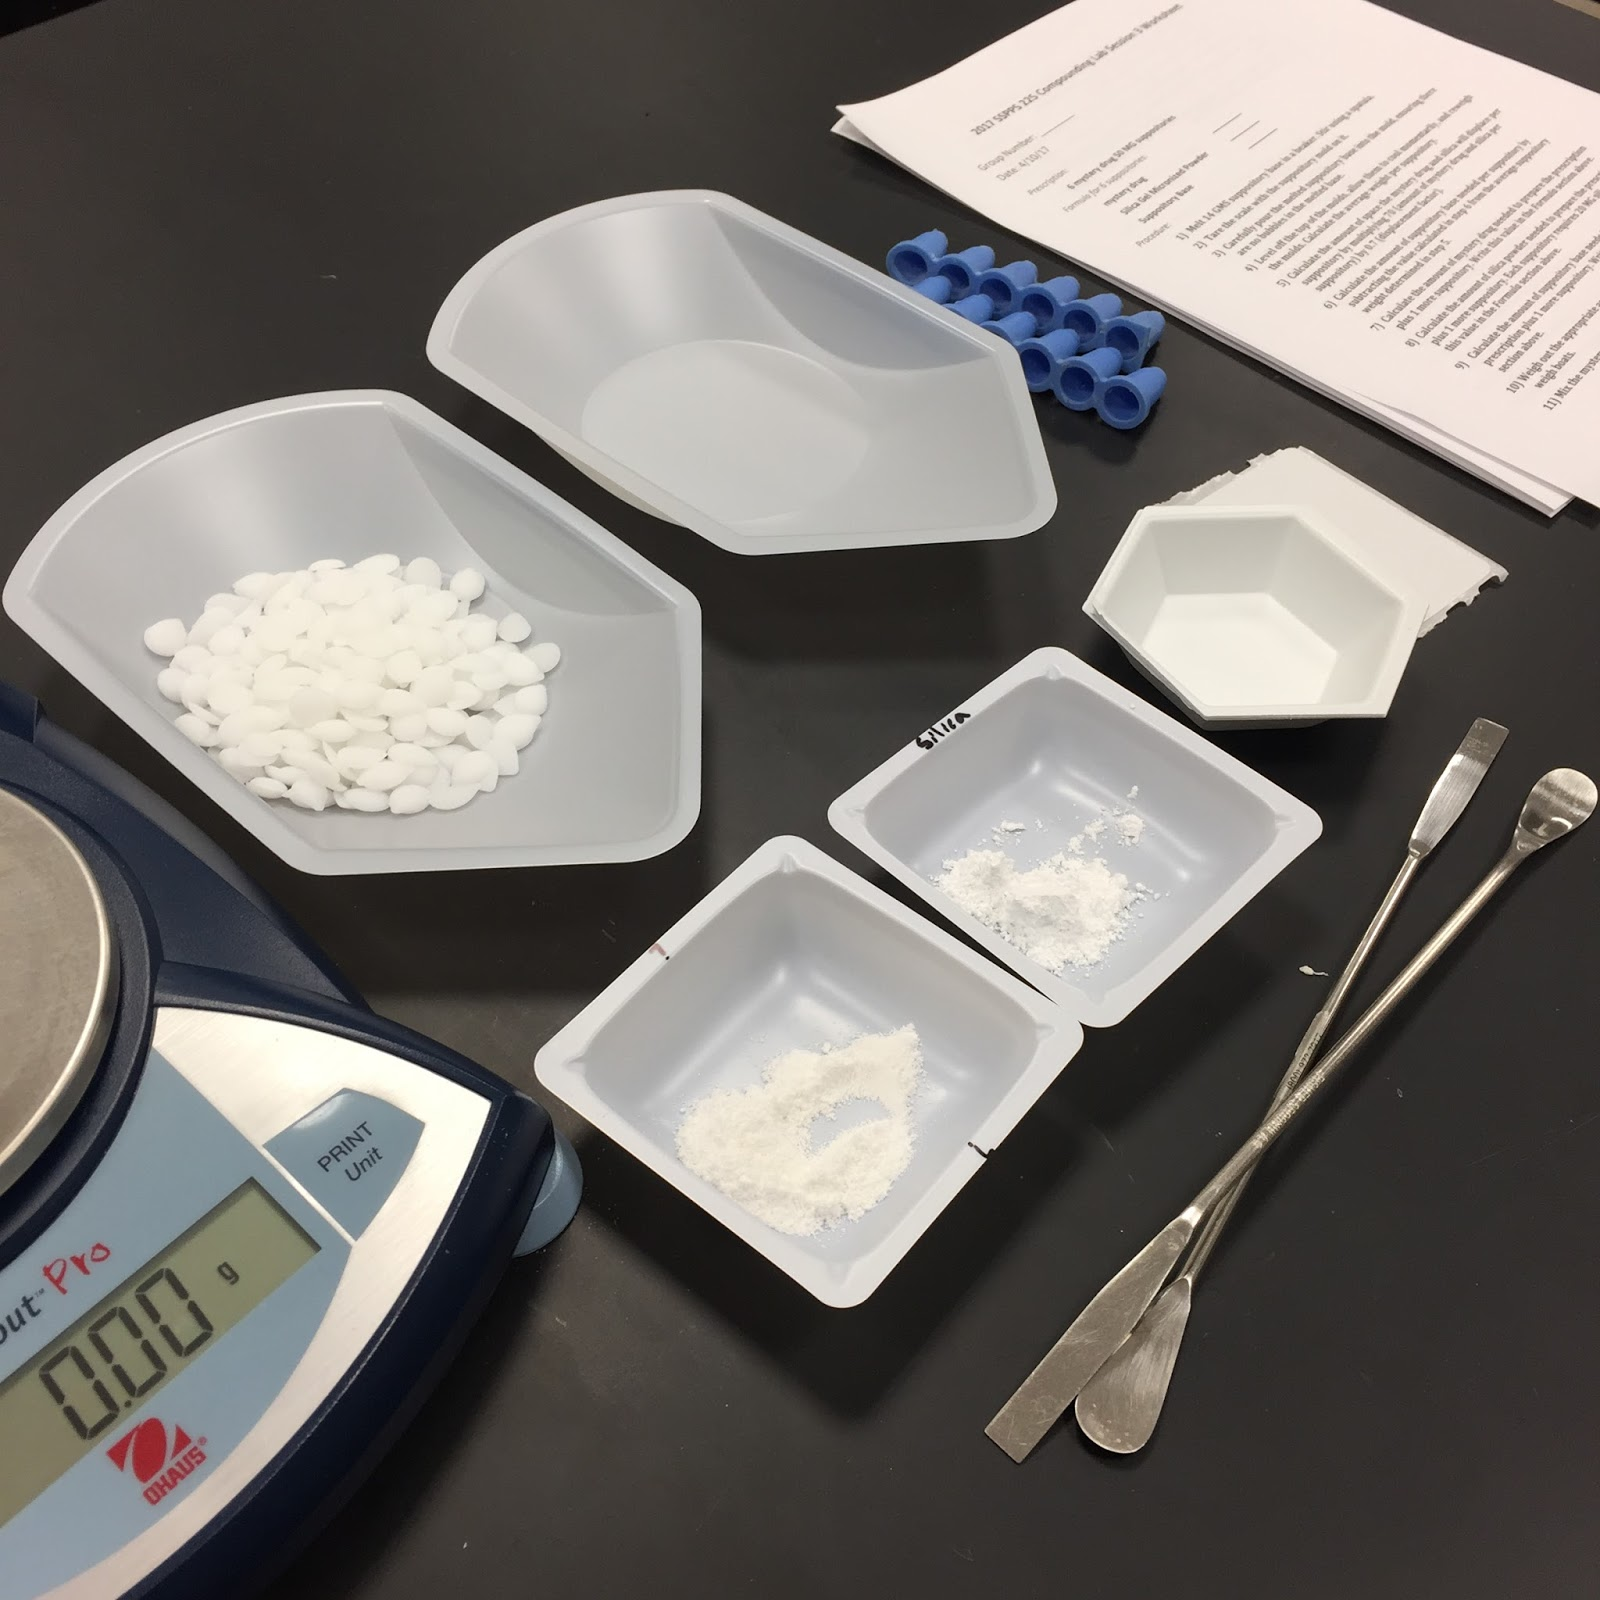 dosage forms lab_adrienne Nguyen_UCSD_school of pharmacy_how to make suppositories_drugs_pharmacist